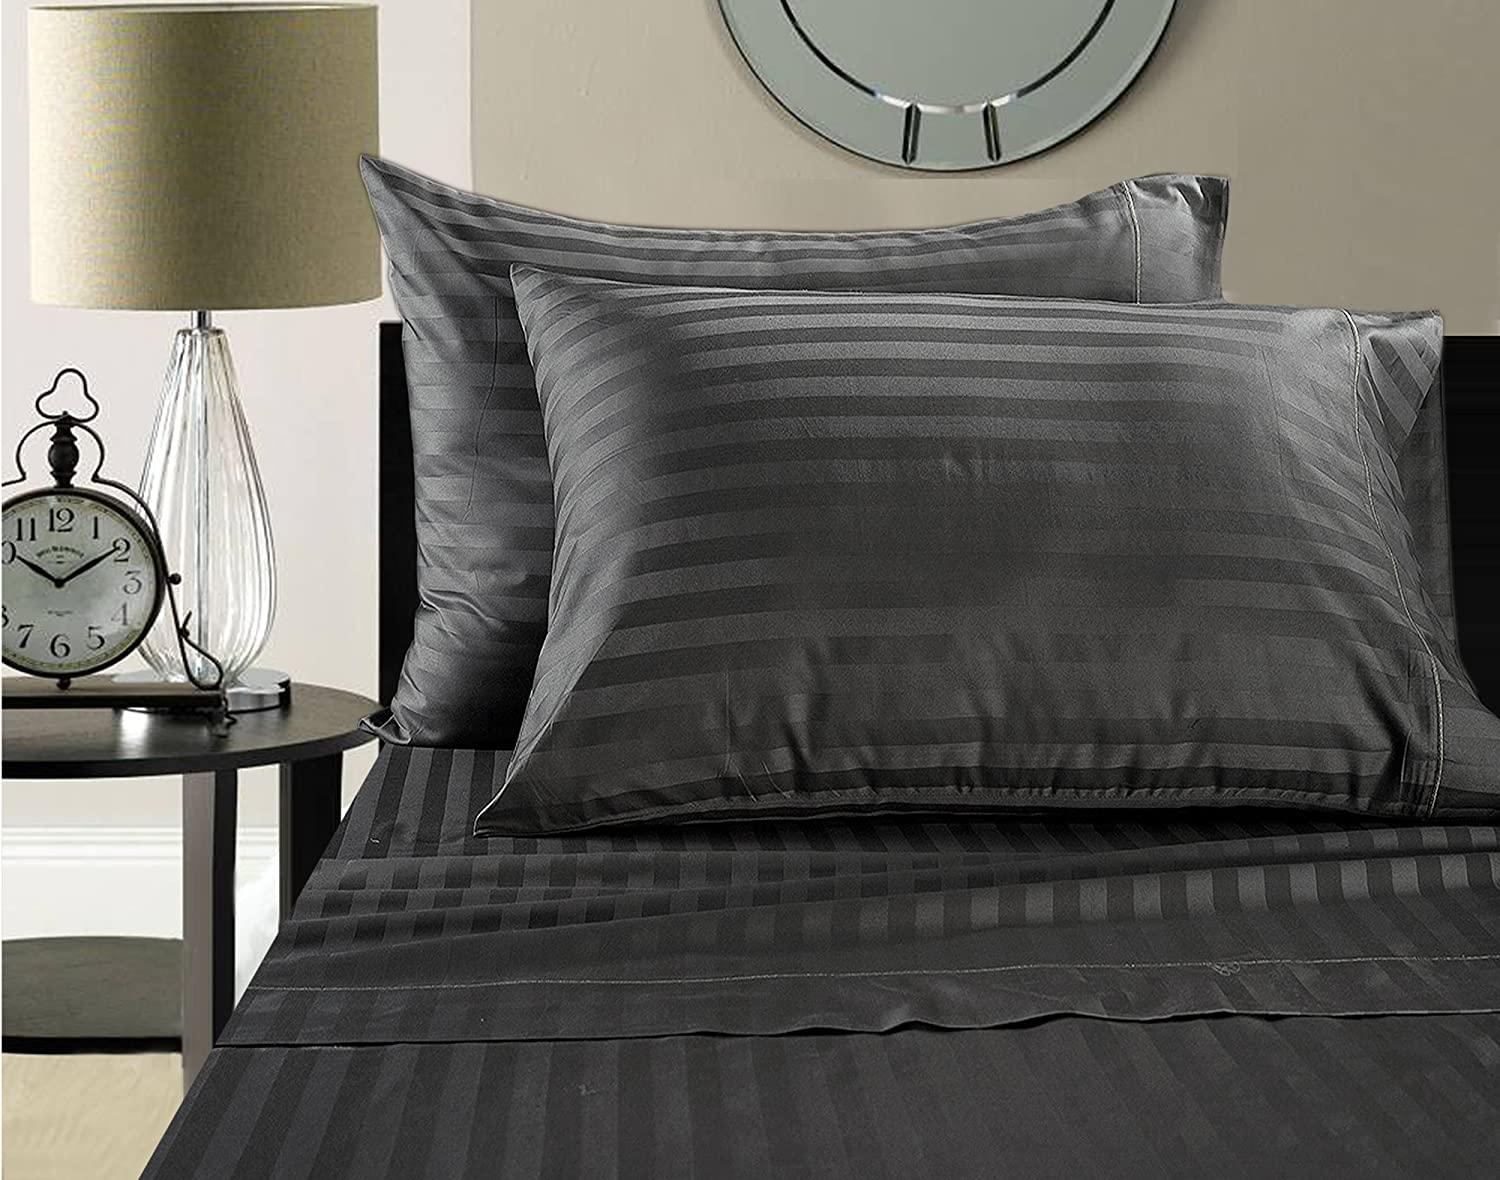 Addy Home Fashions Egyptian Cotton 500 Thread Count Damask Stripe Sheet Set, Queen - Charcoal